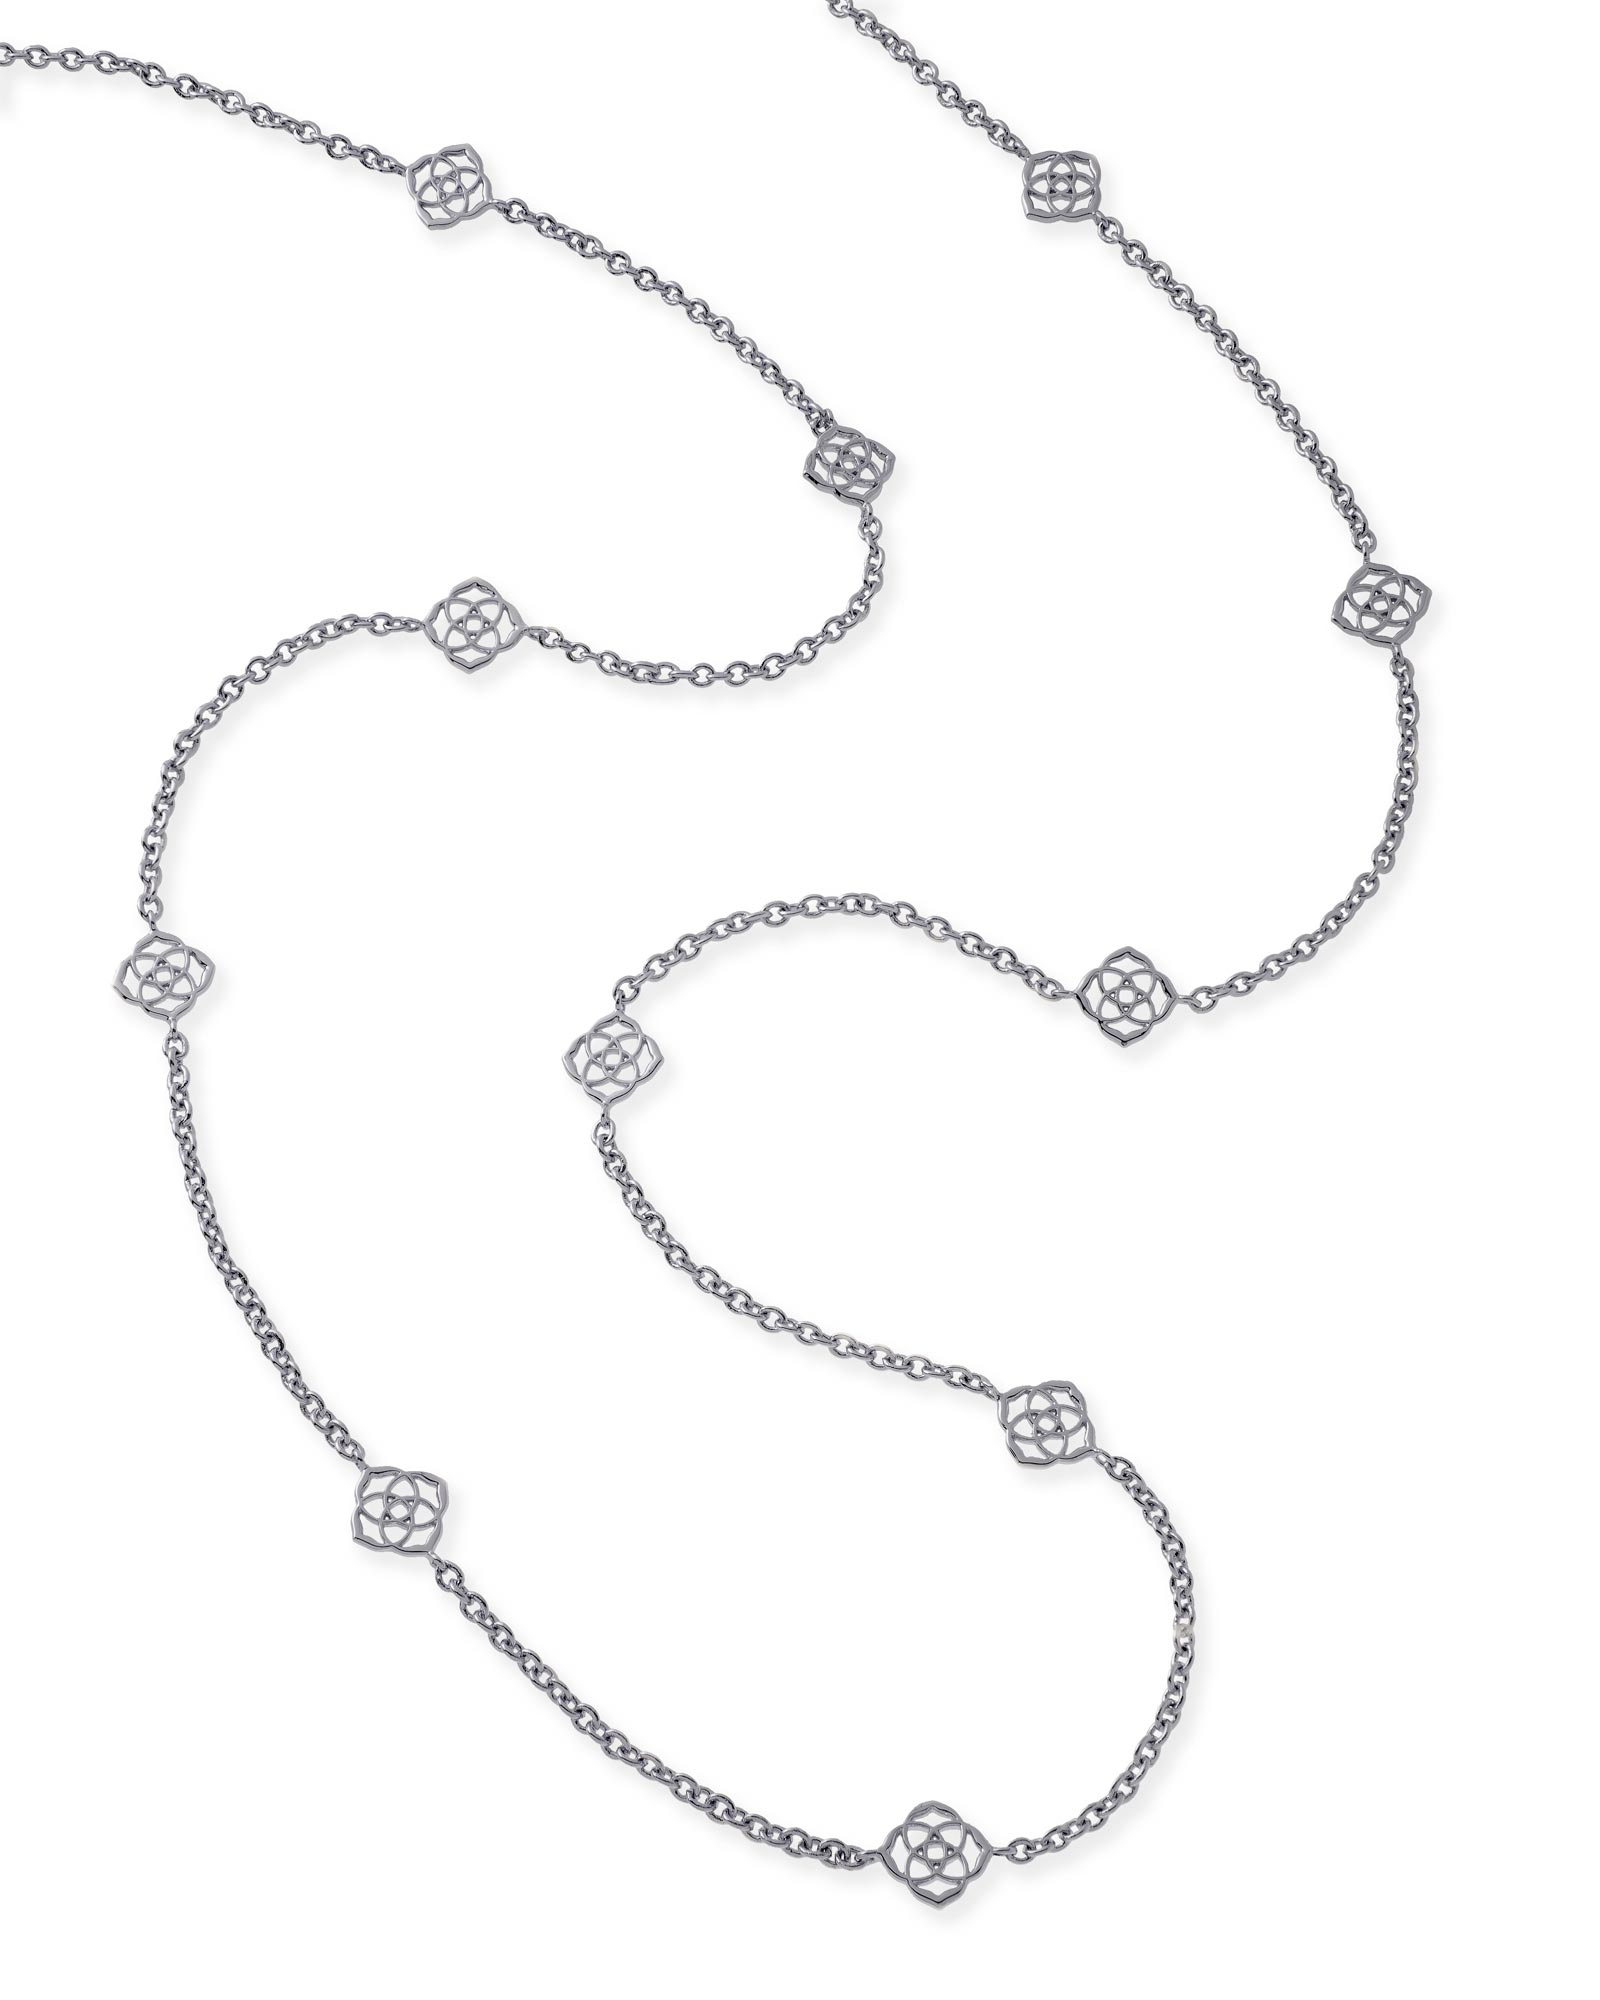 Devalyn Long Necklace